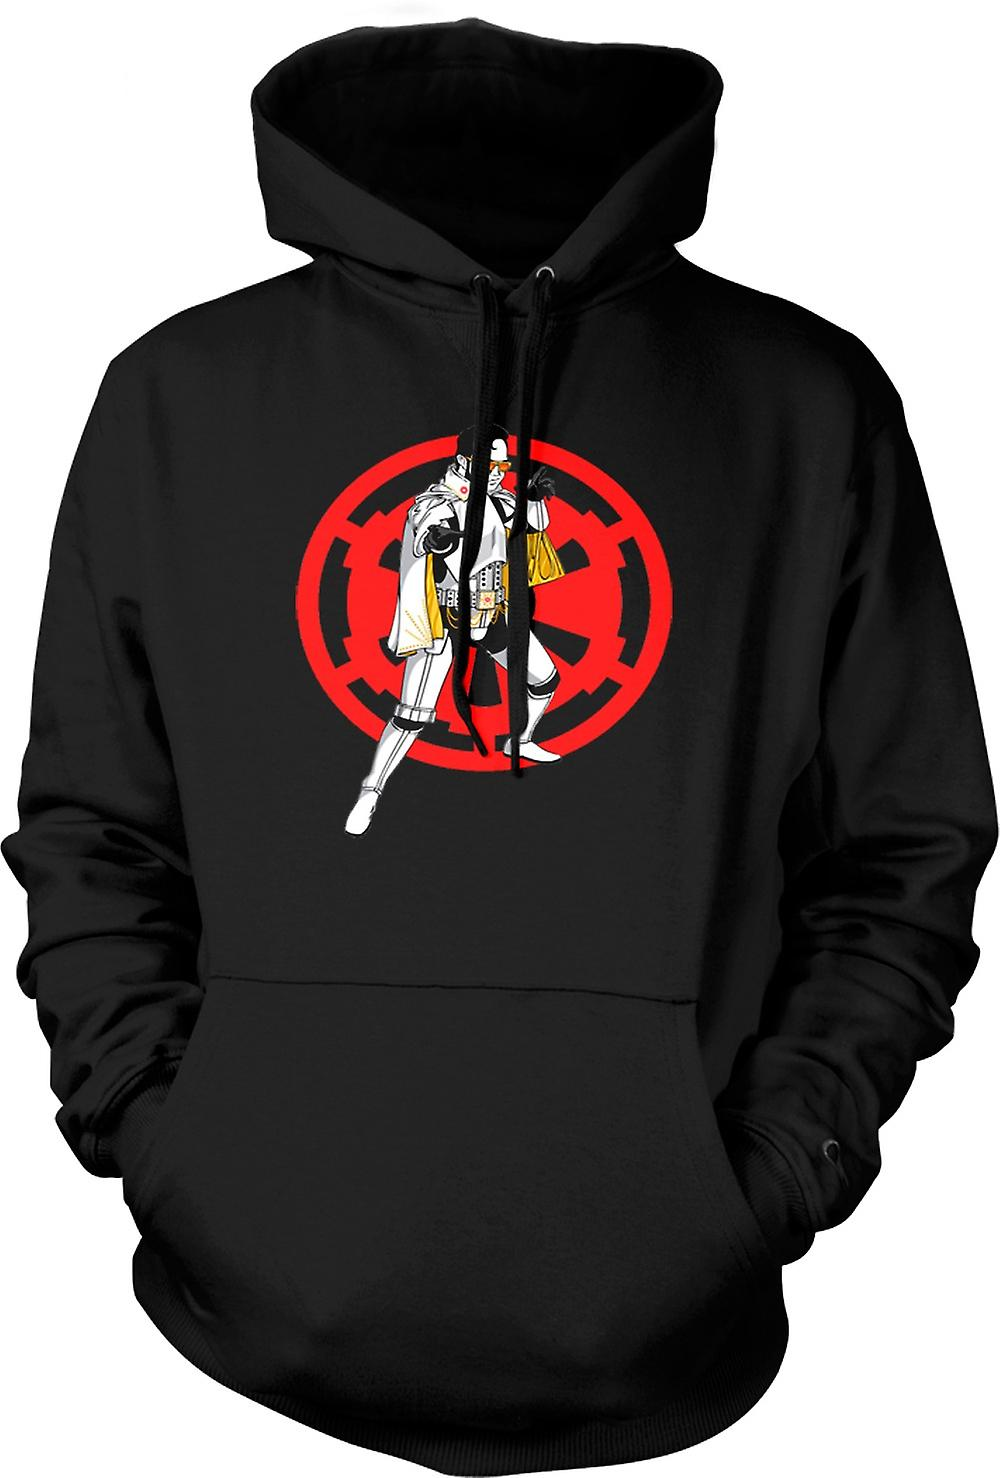 Mens Hoodie - Elvis Stormtrooper Star Wars Inspired